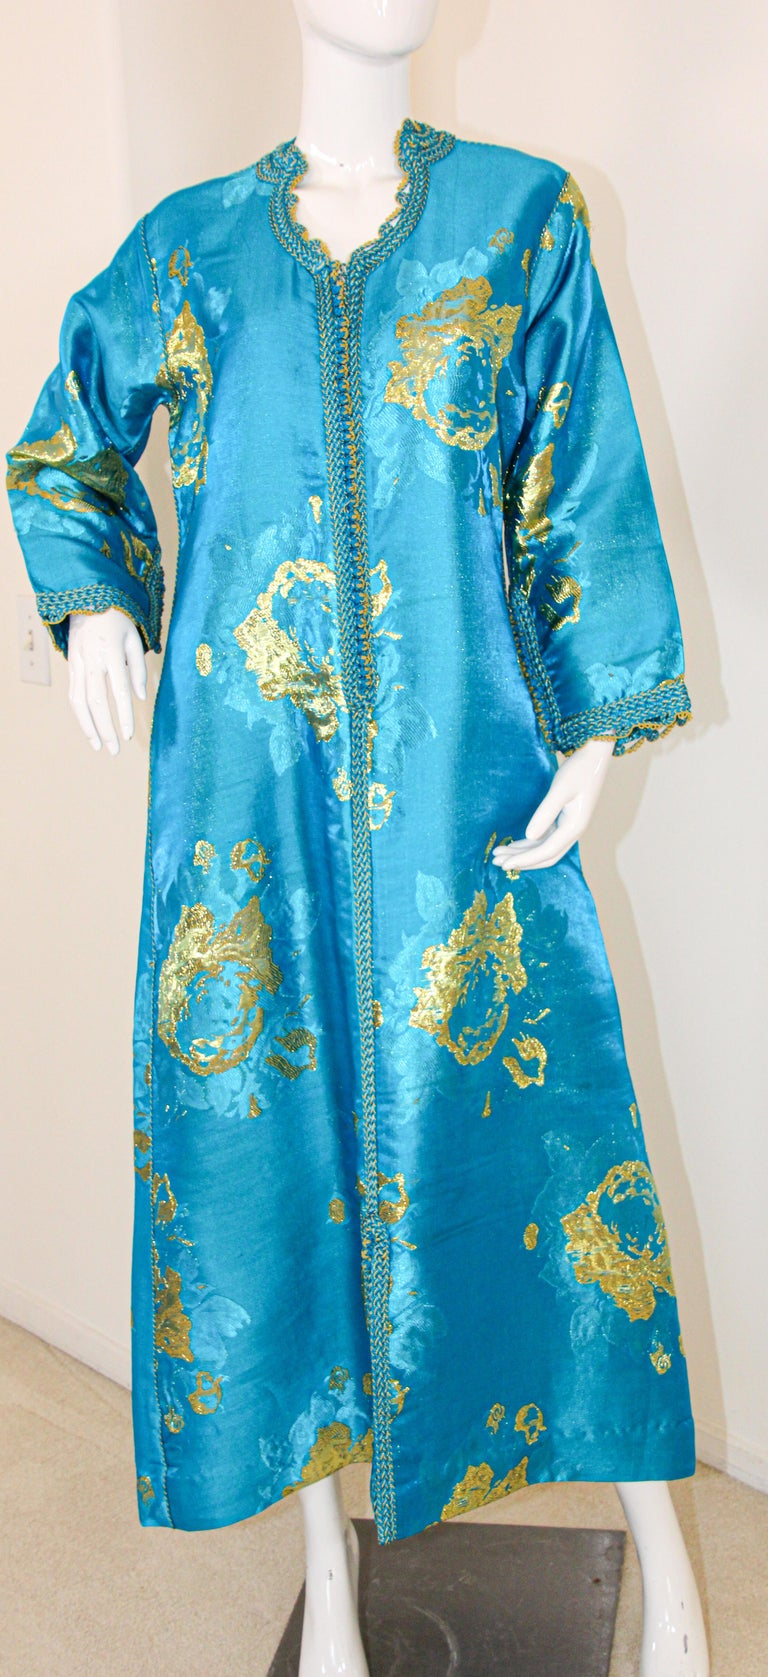 Moroccan Kaftan in Turquoise and Gold Floral Brocade Metallic Lame For Sale 12